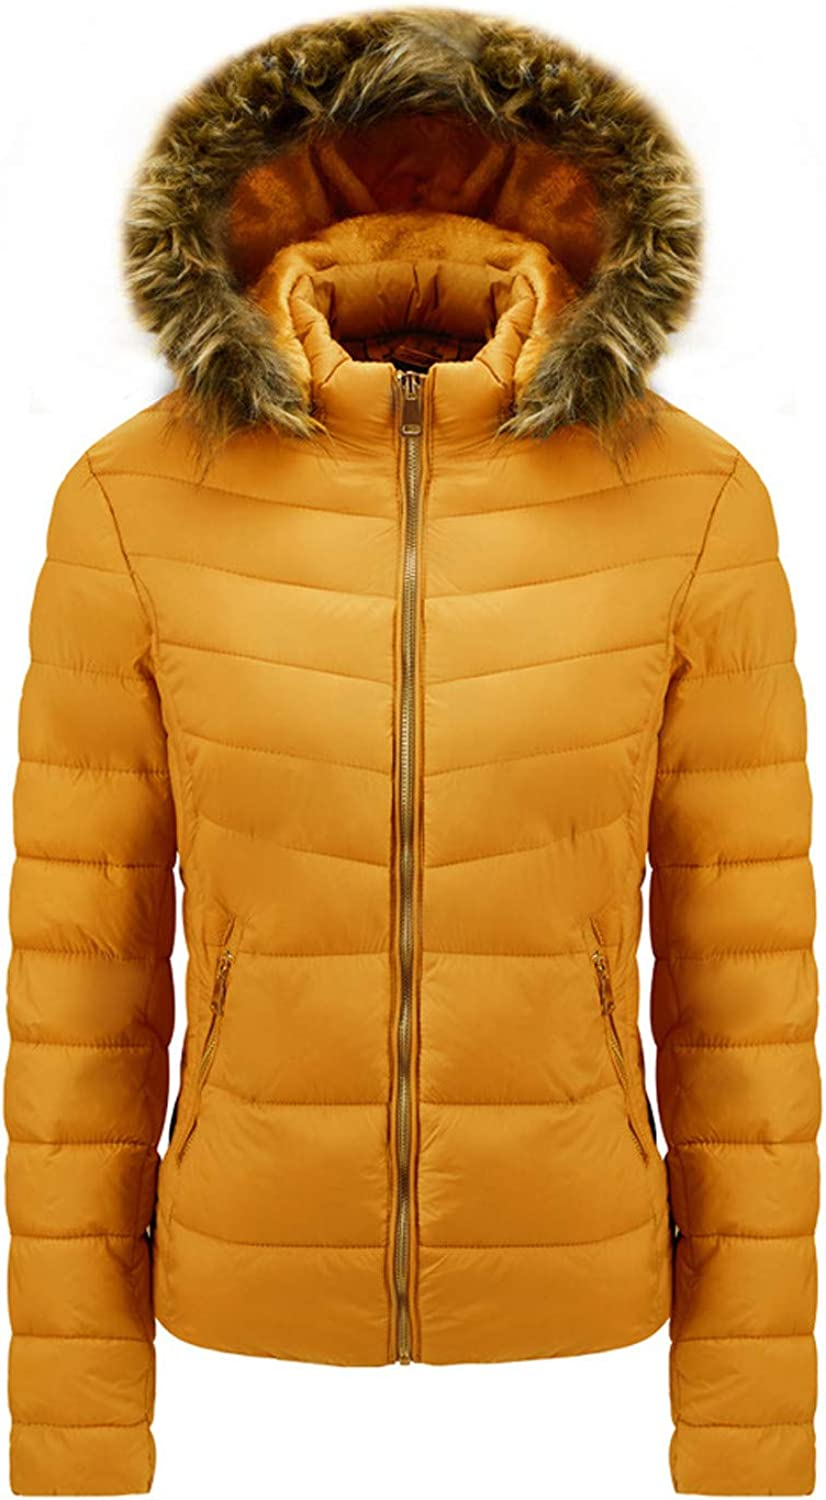 Simayixxch Womens Padded Jacket Overcoat Chicago Mall Sleeve Manufacturer regenerated product Sl Fur Long Hood